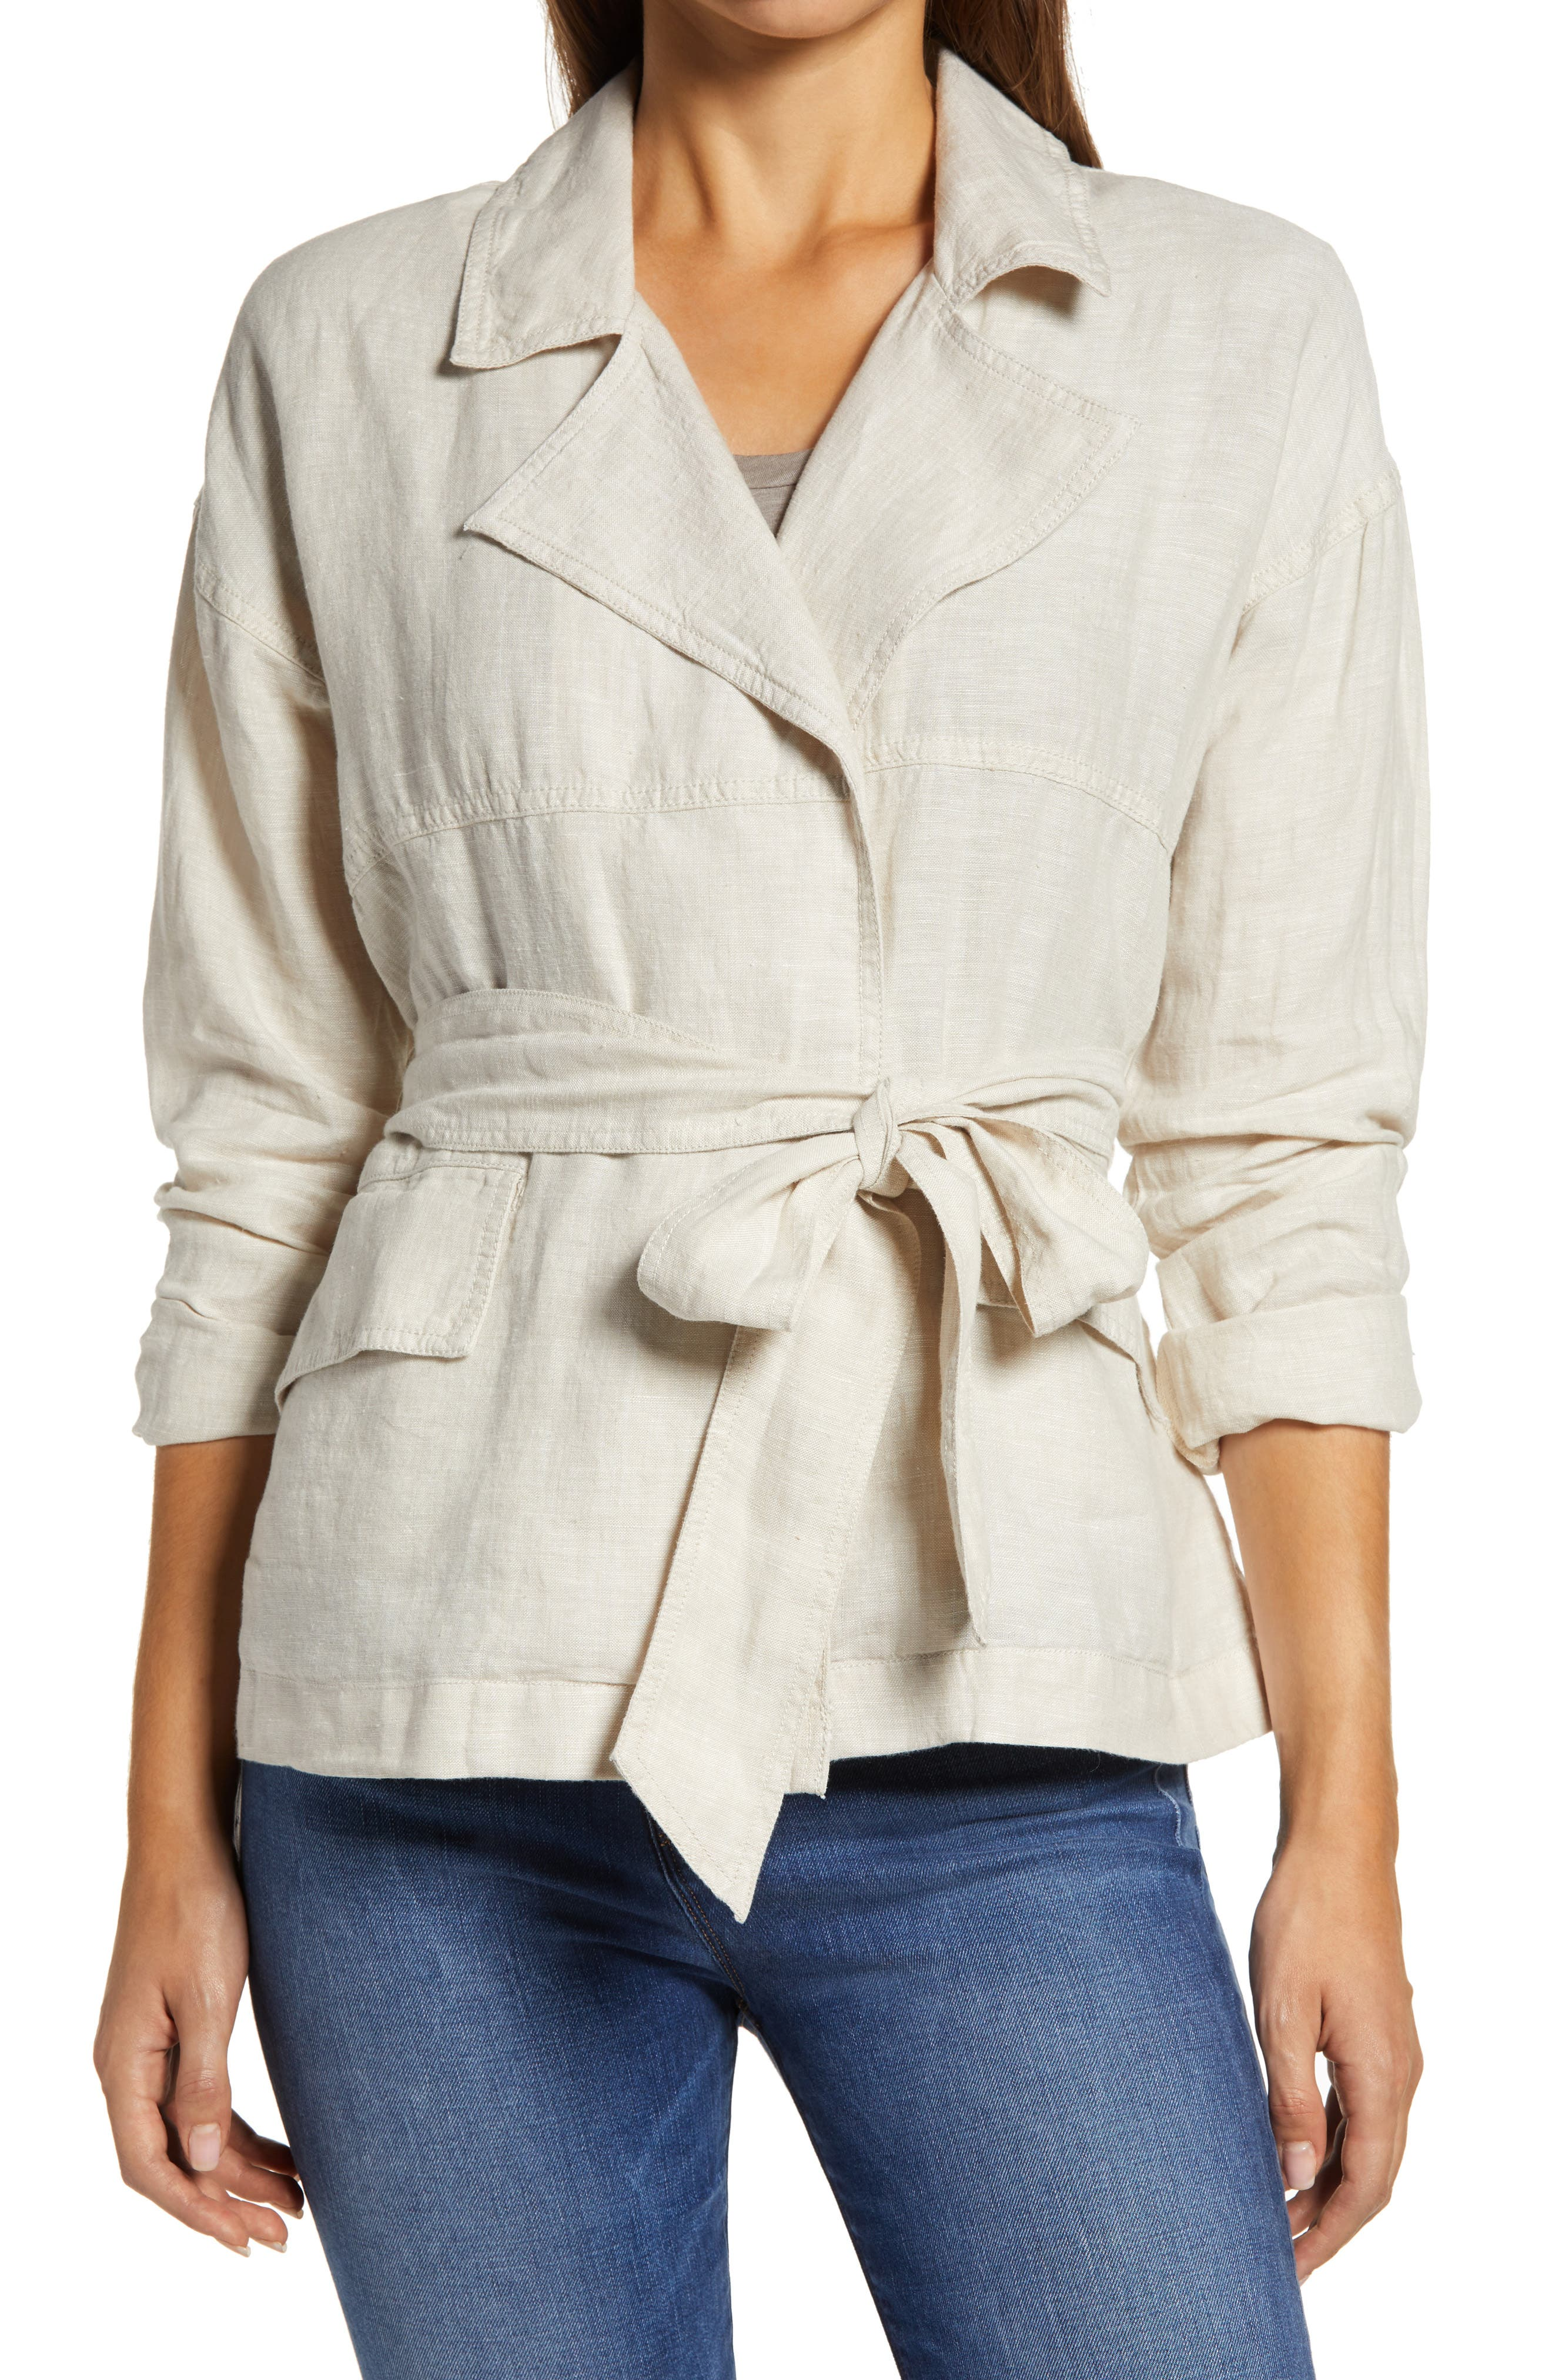 1930s Style Clothing and Fashion Womens Caslon Belted Linen Jacket $41.40 AT vintagedancer.com